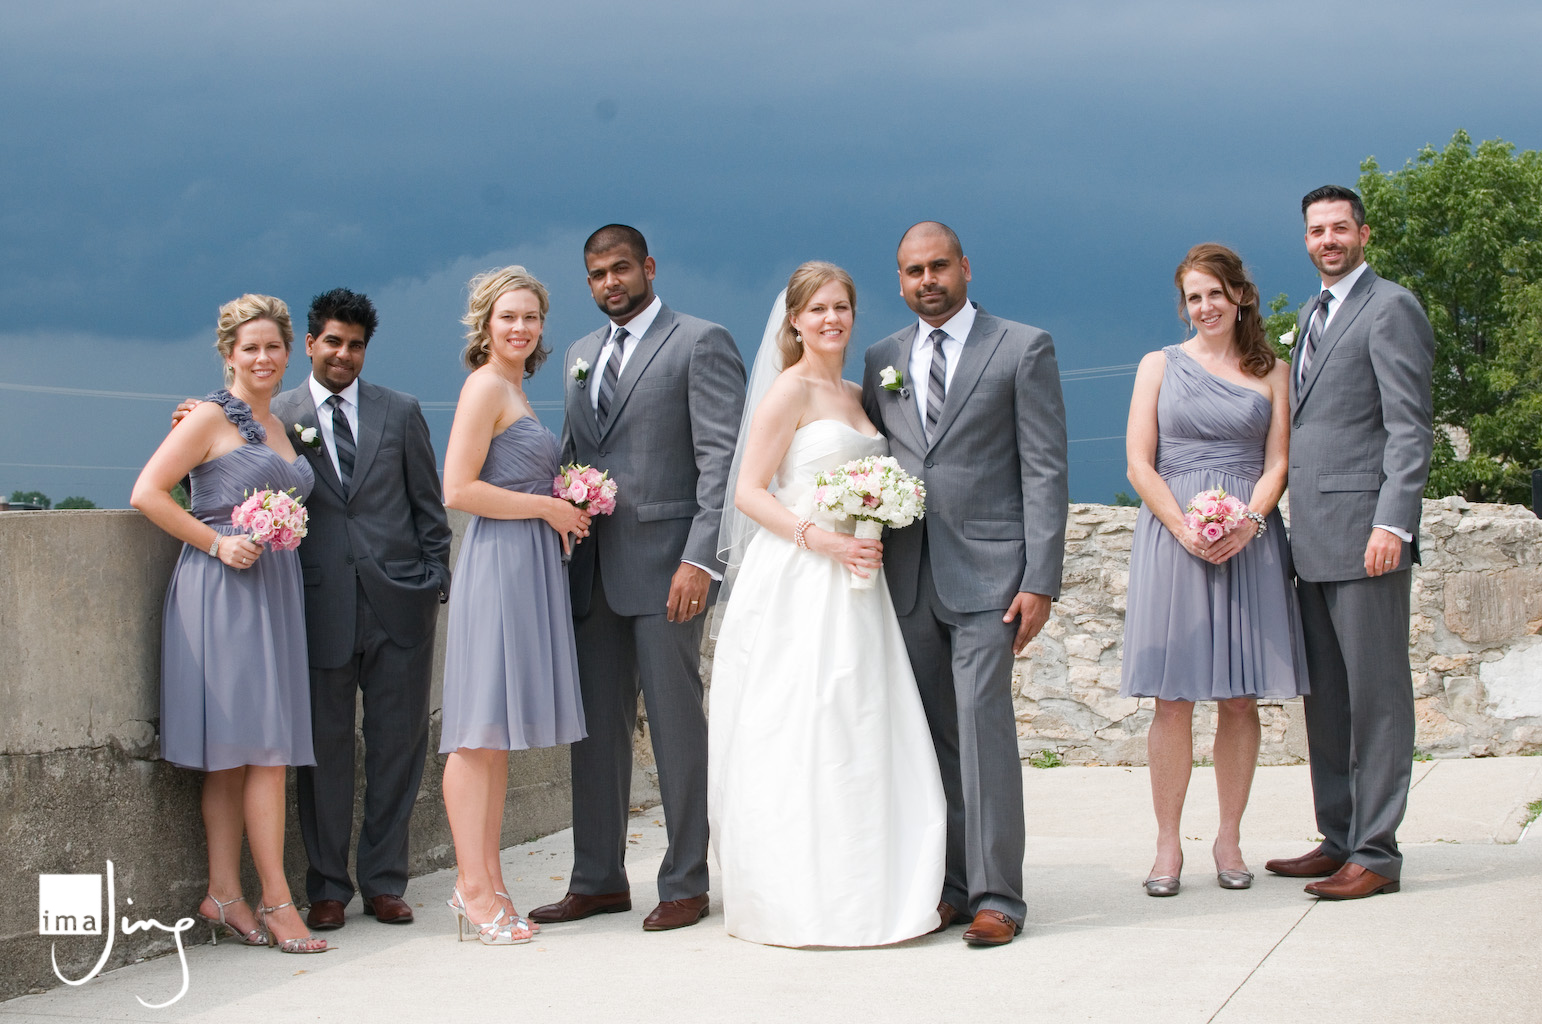 Wedding party at the Mill Race Park, Cambridge ON